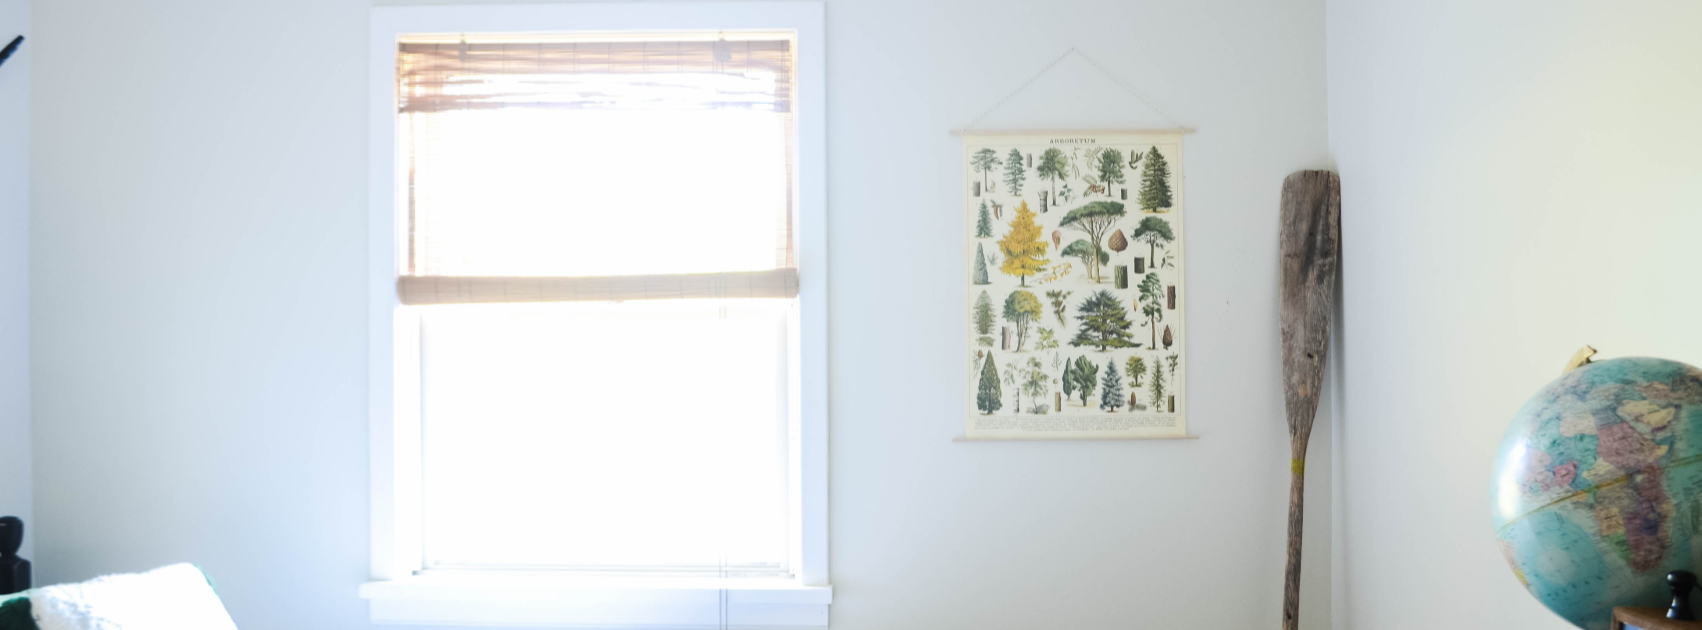 DIY Woodland Wall Hanging